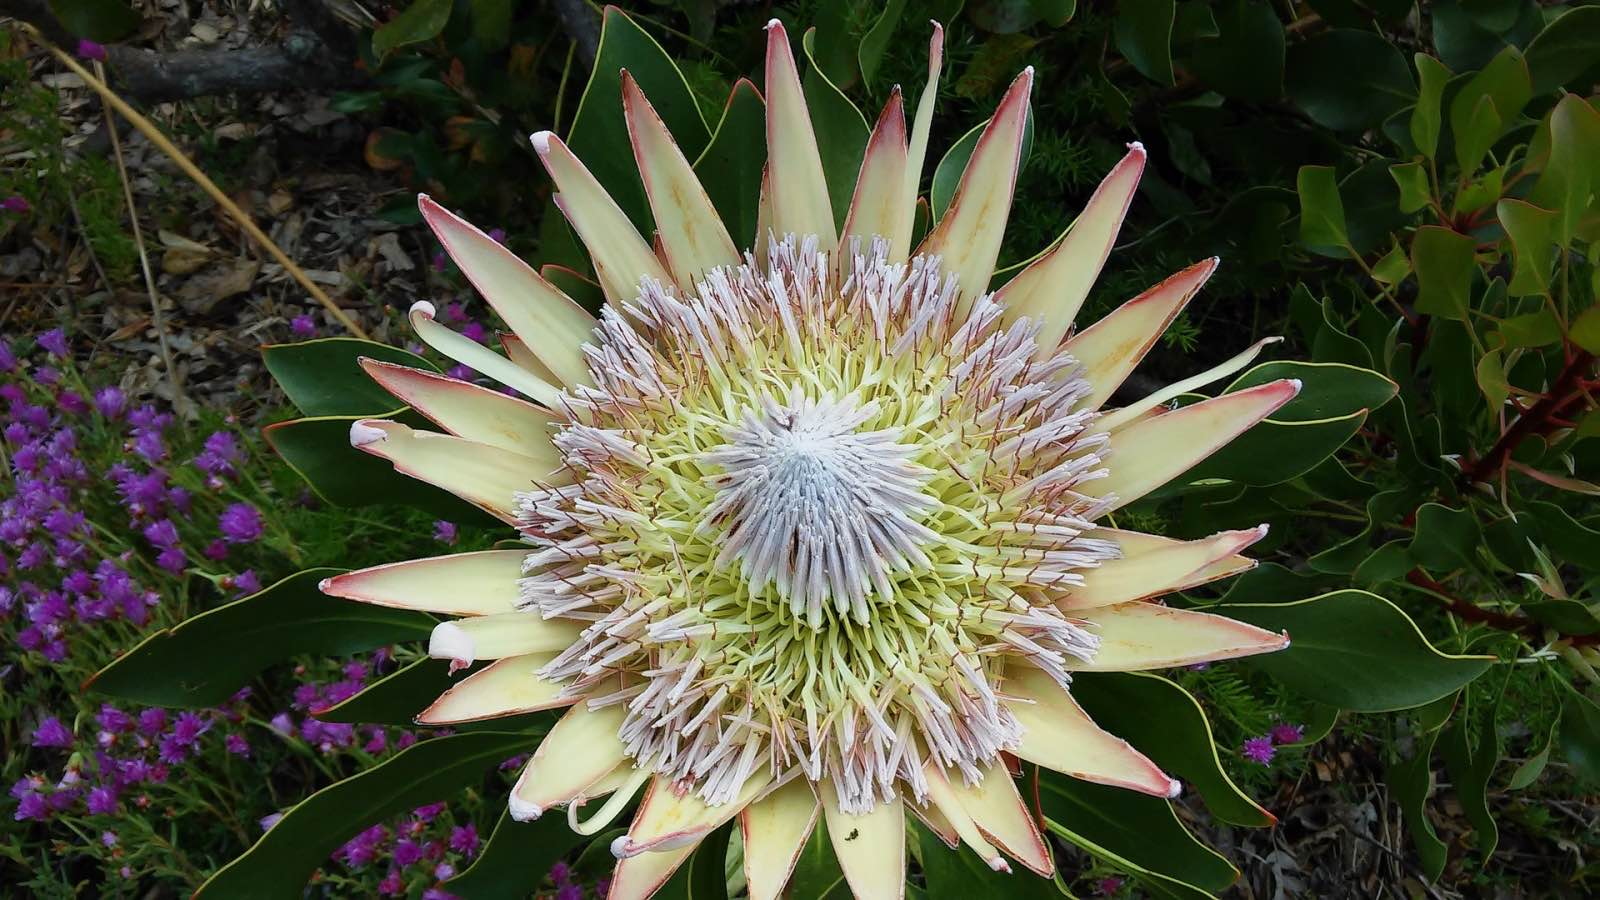 A king protea - South Africa's national flower